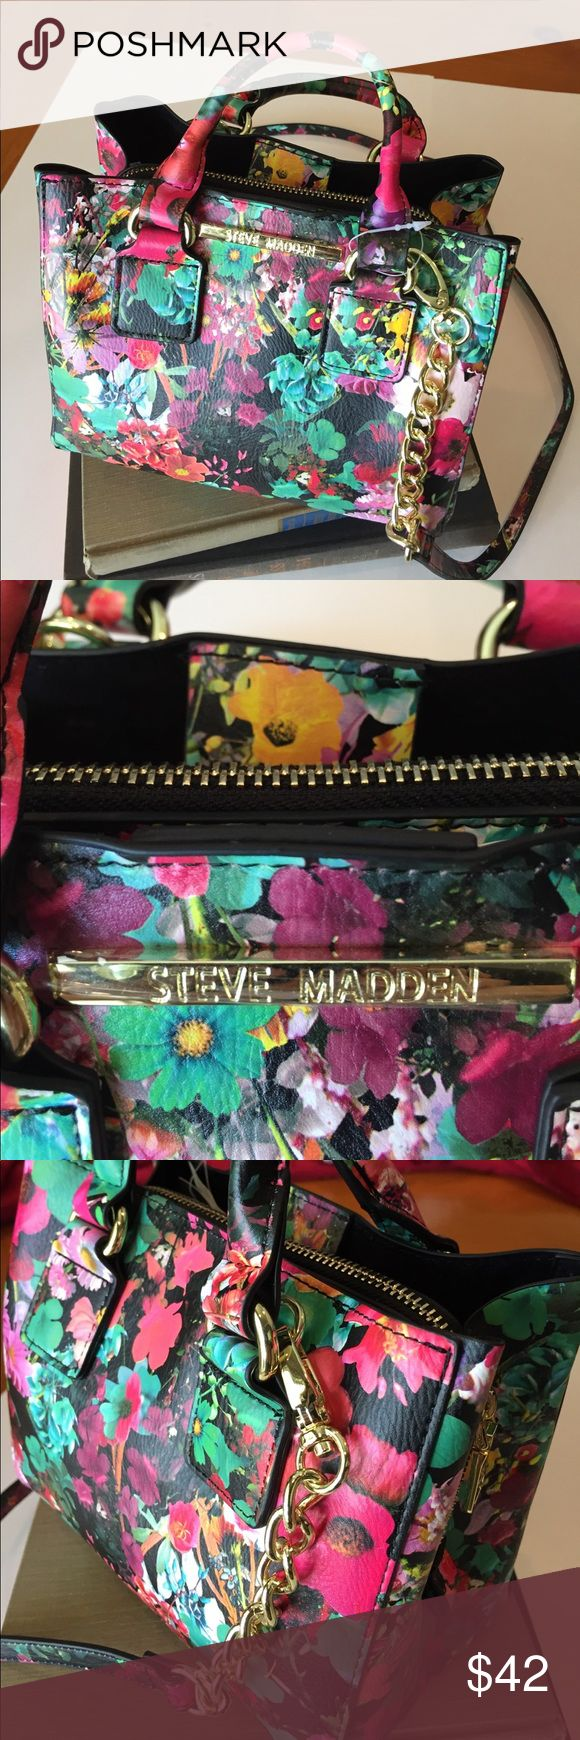 Steve Madden Floral Satchel Bag/New Perfect bag for Summer from SM with a nice floral design and two separate compartments with another bag in the middle Steve Madden Bags Satchels